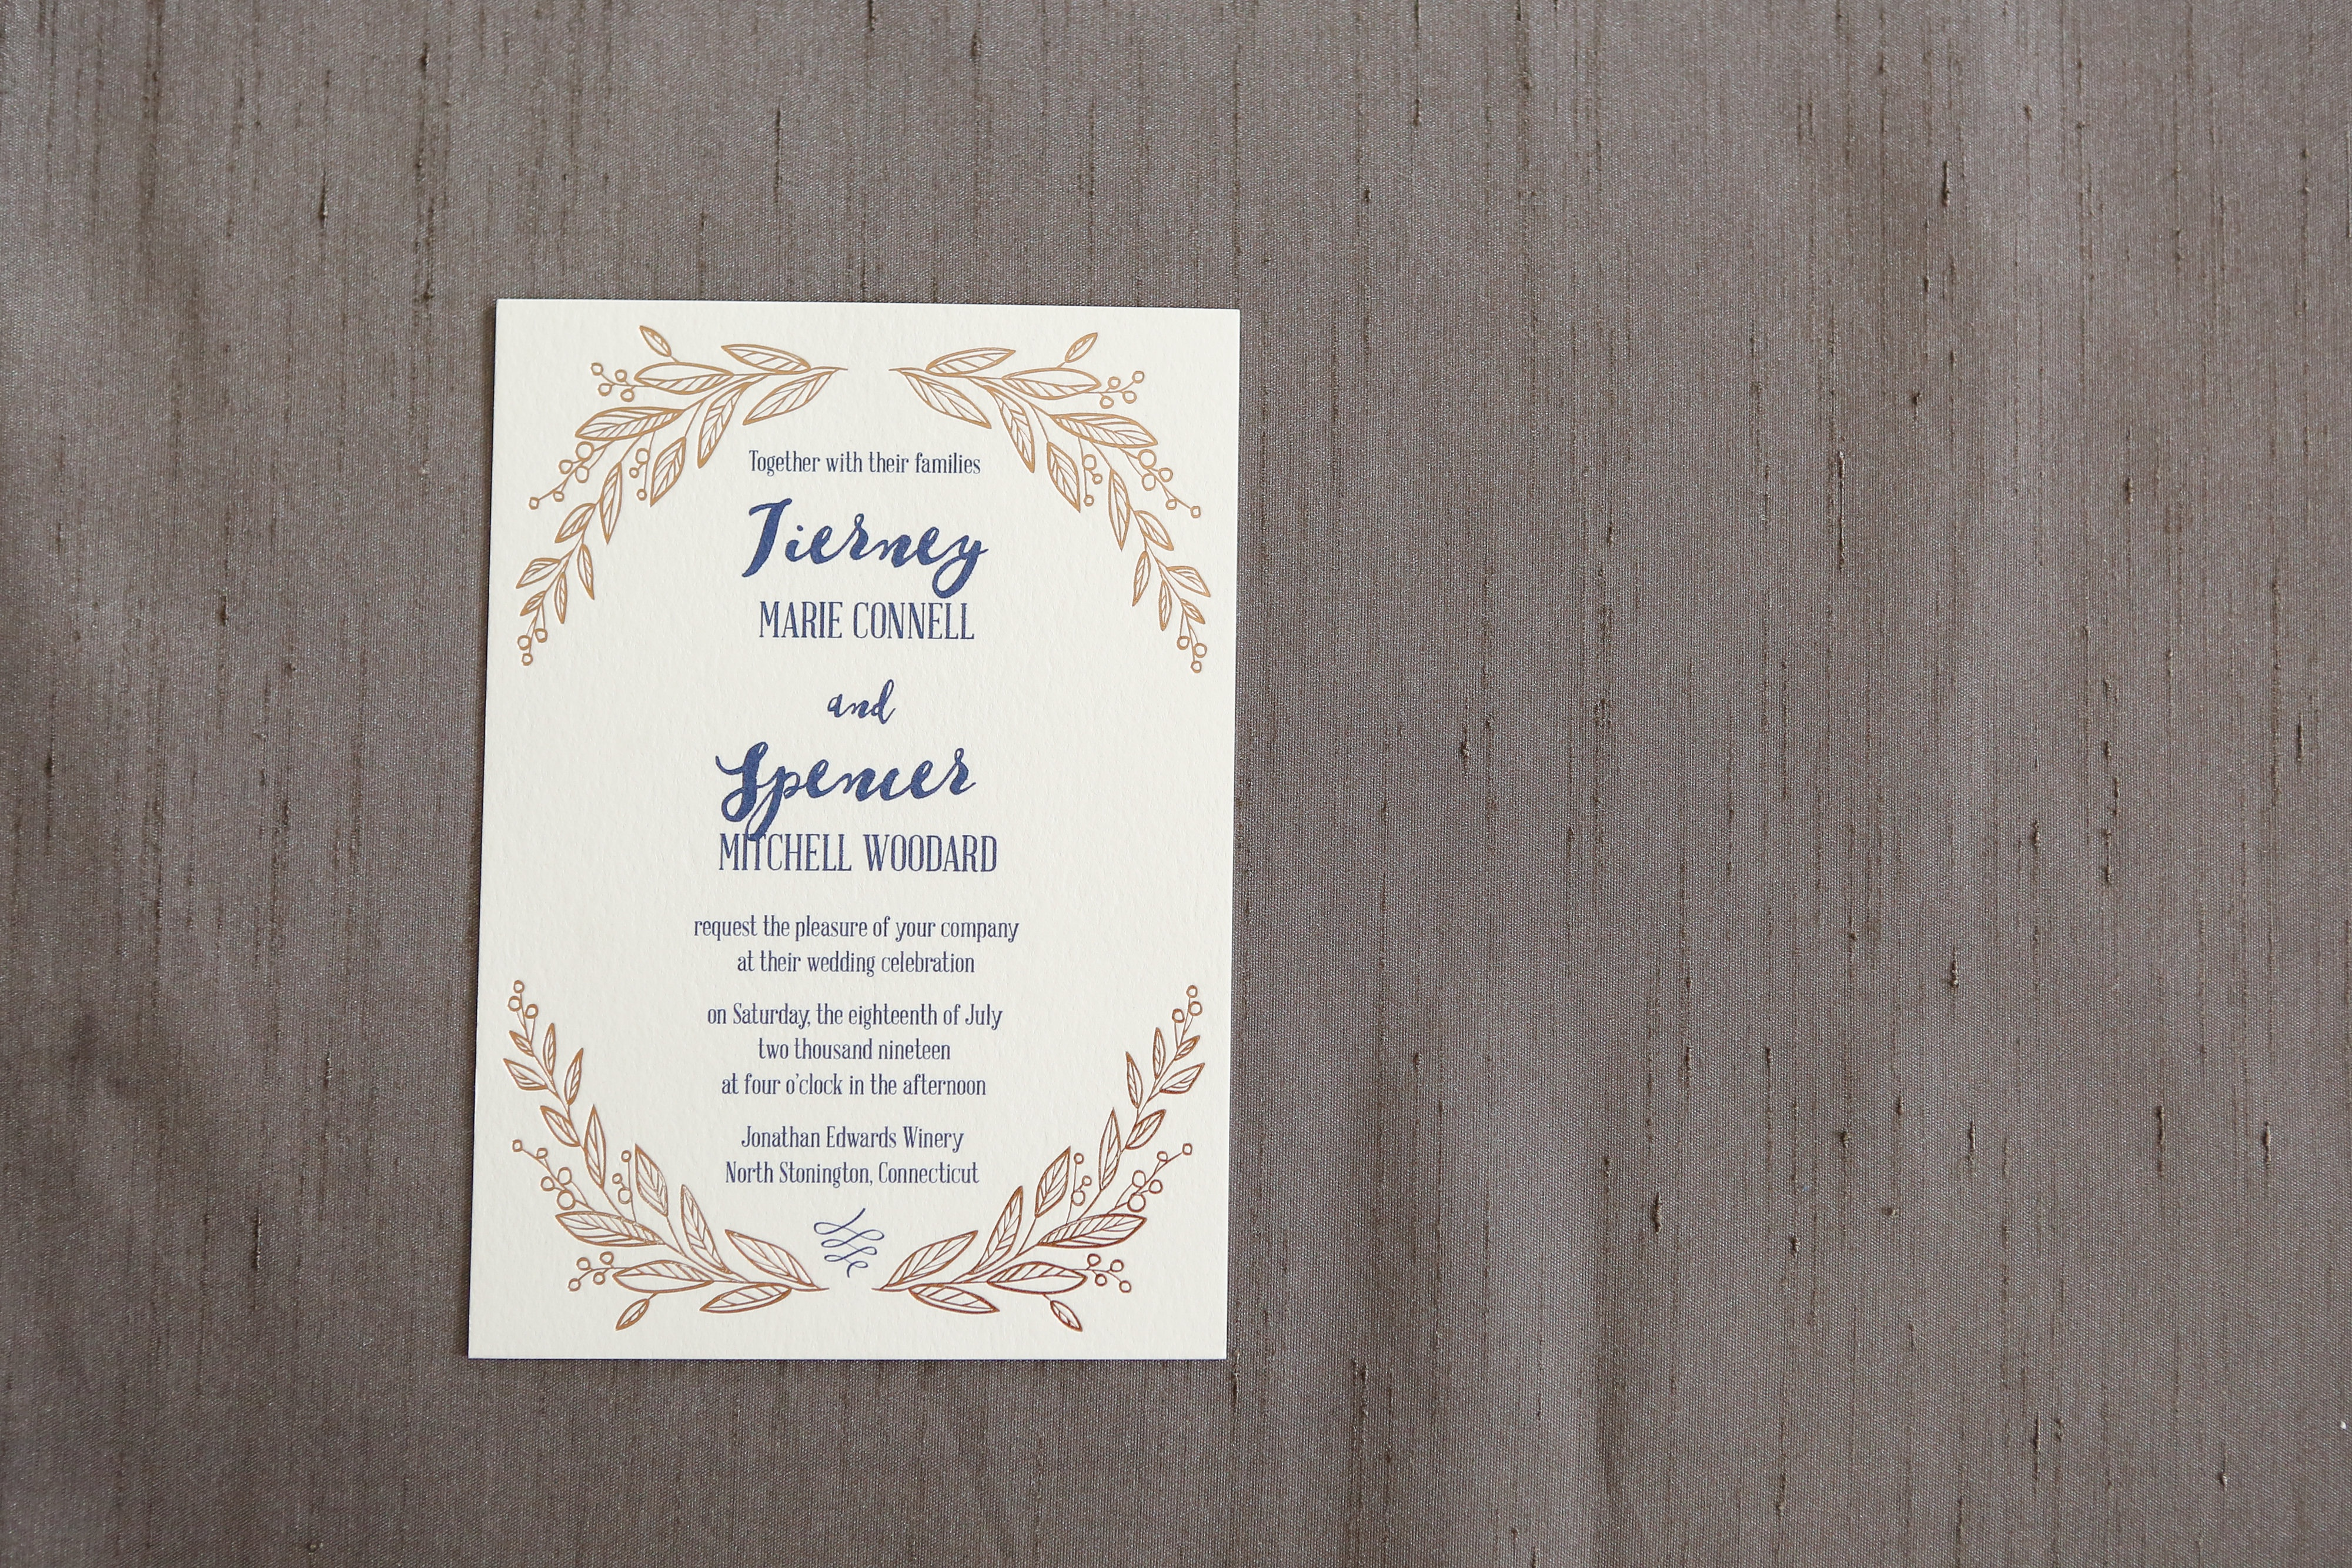 Copper foil is beautifully accented by navy blue on this fantastic design.